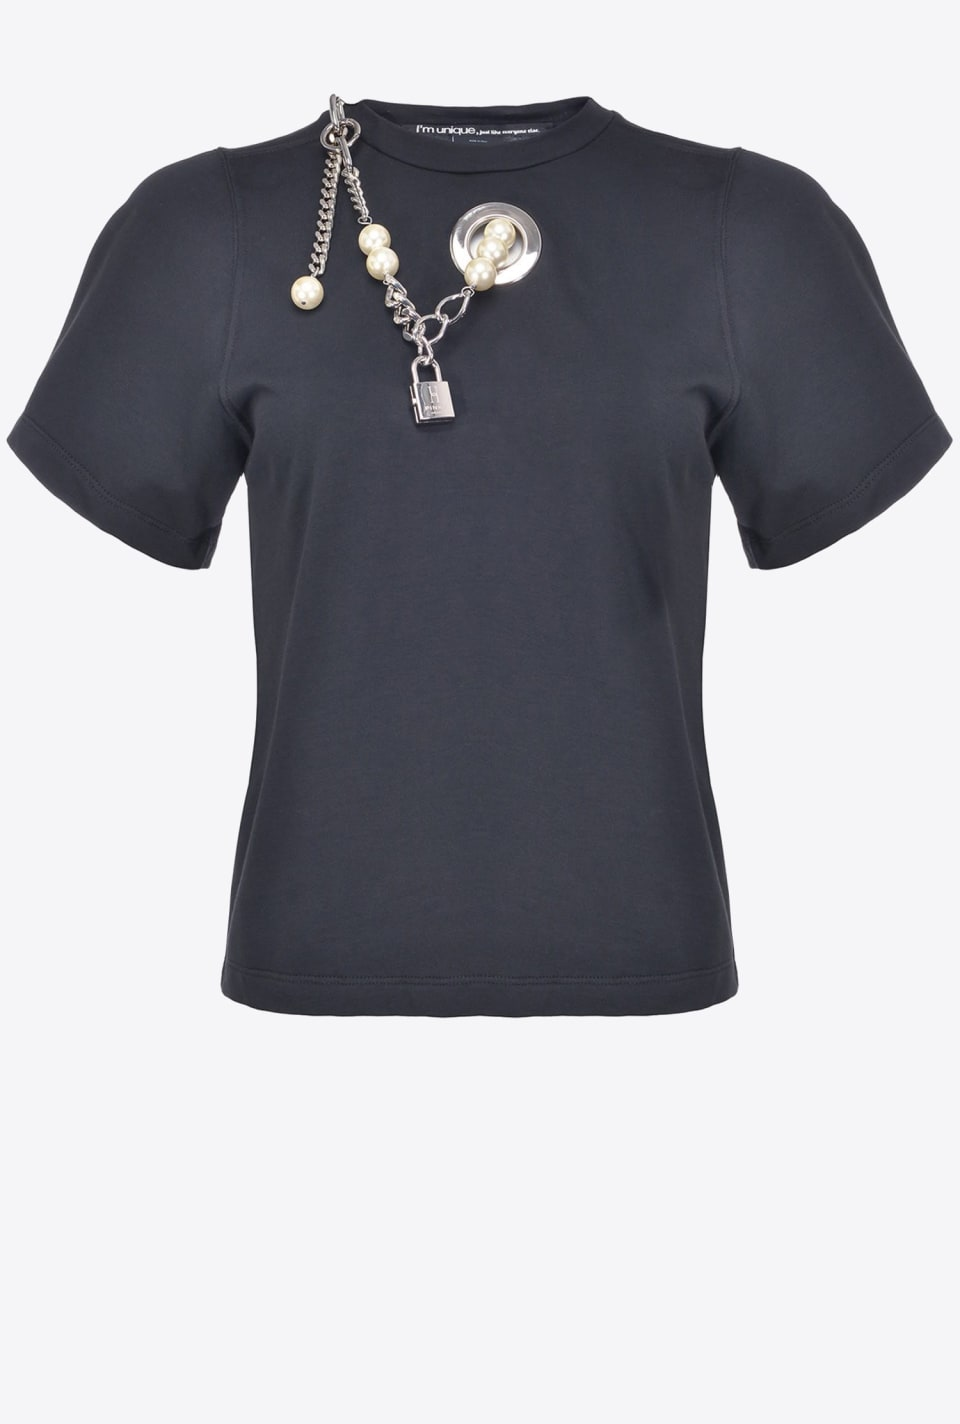 T-shirt with pearls - Pinko